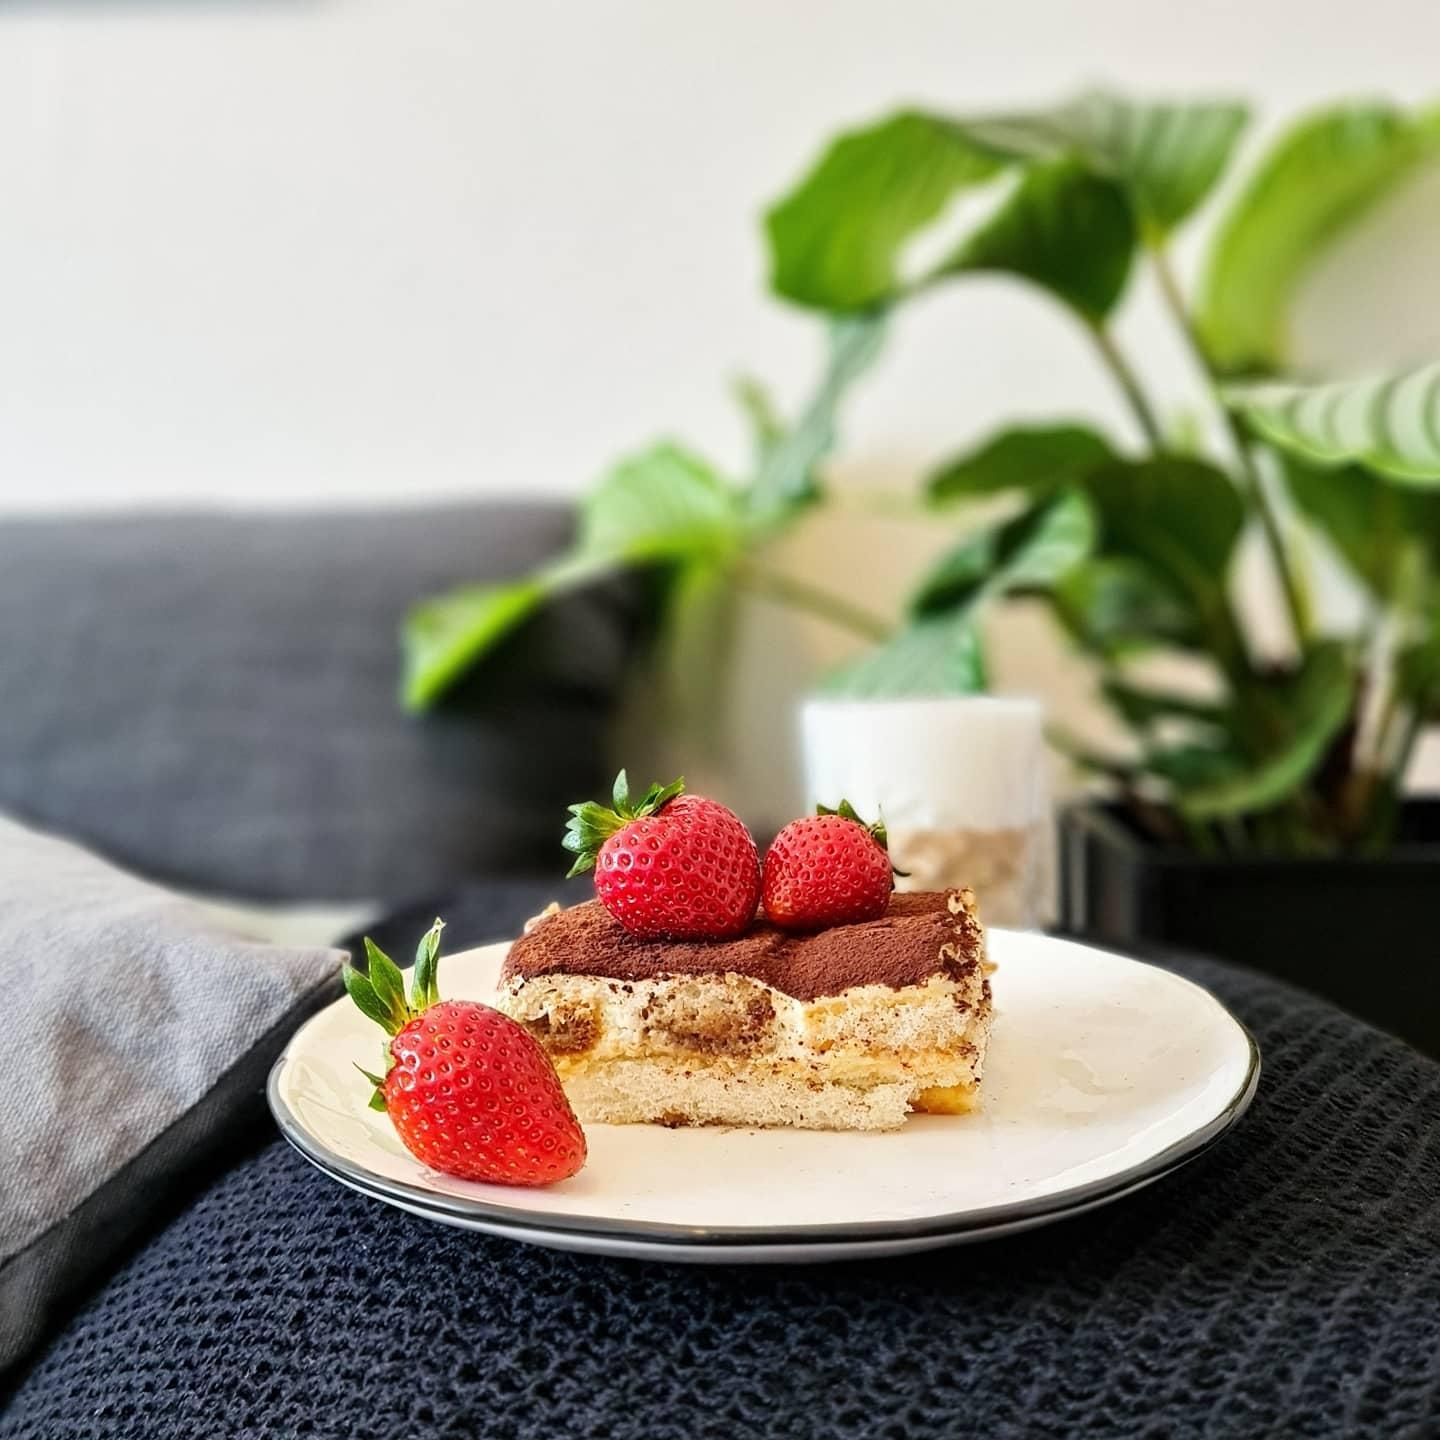 #sweettreat #yummy #tiramisu #sonntag #weekendvibes